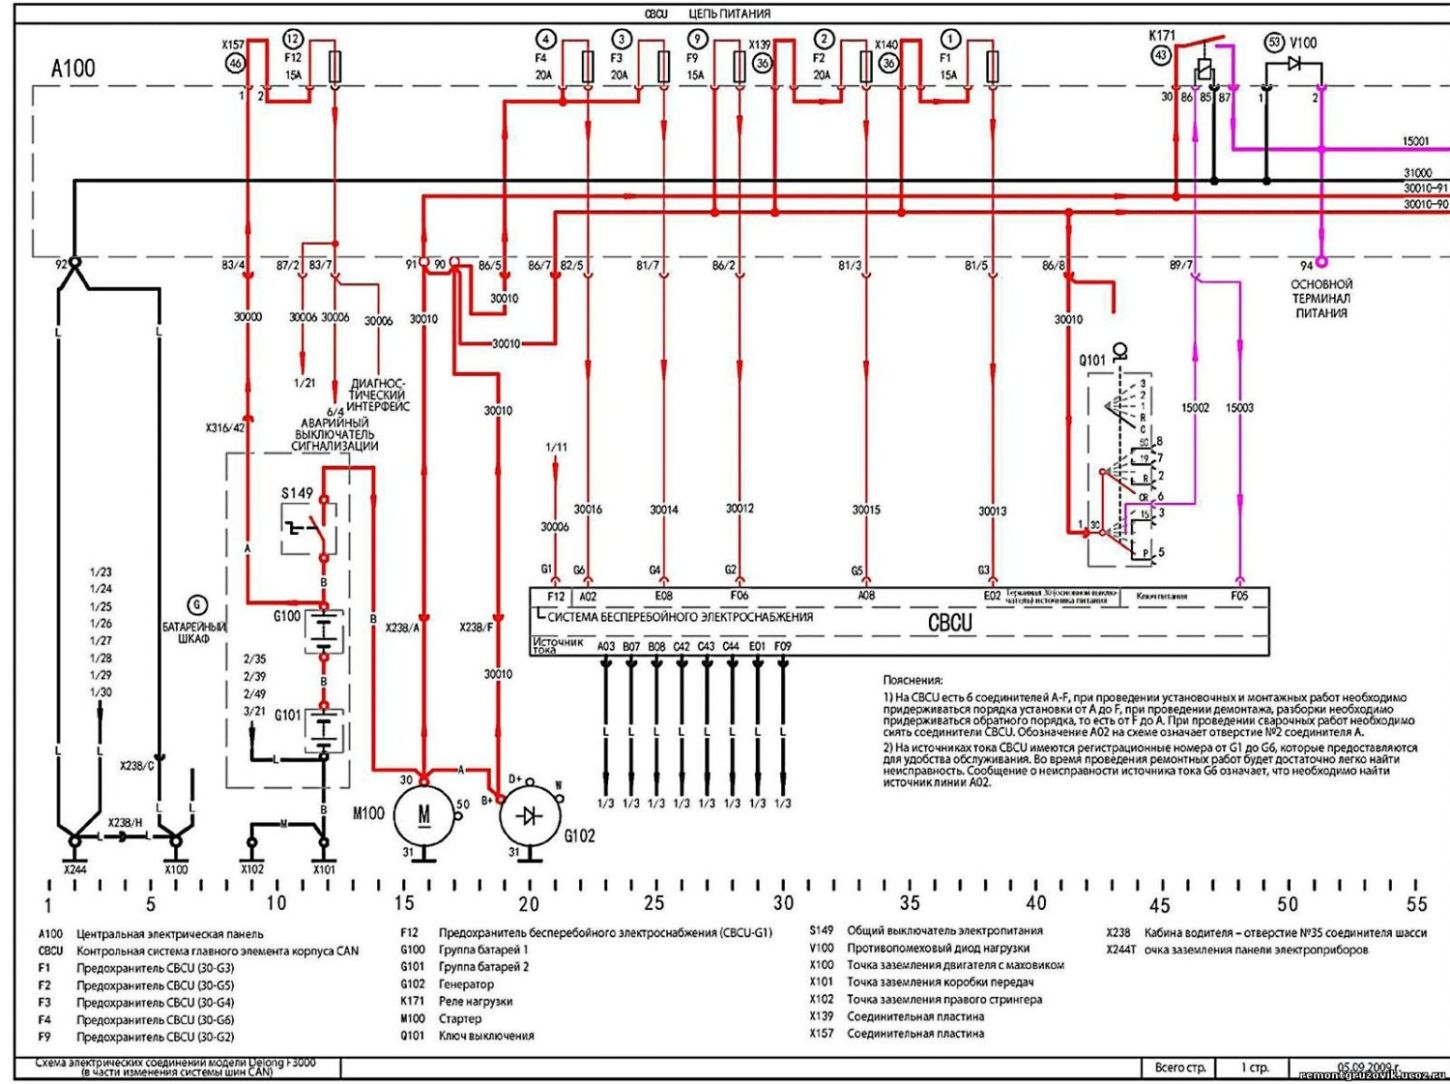 91 Dodge Ram Wiring Diagram Free Download Wiring Diagram Schematic